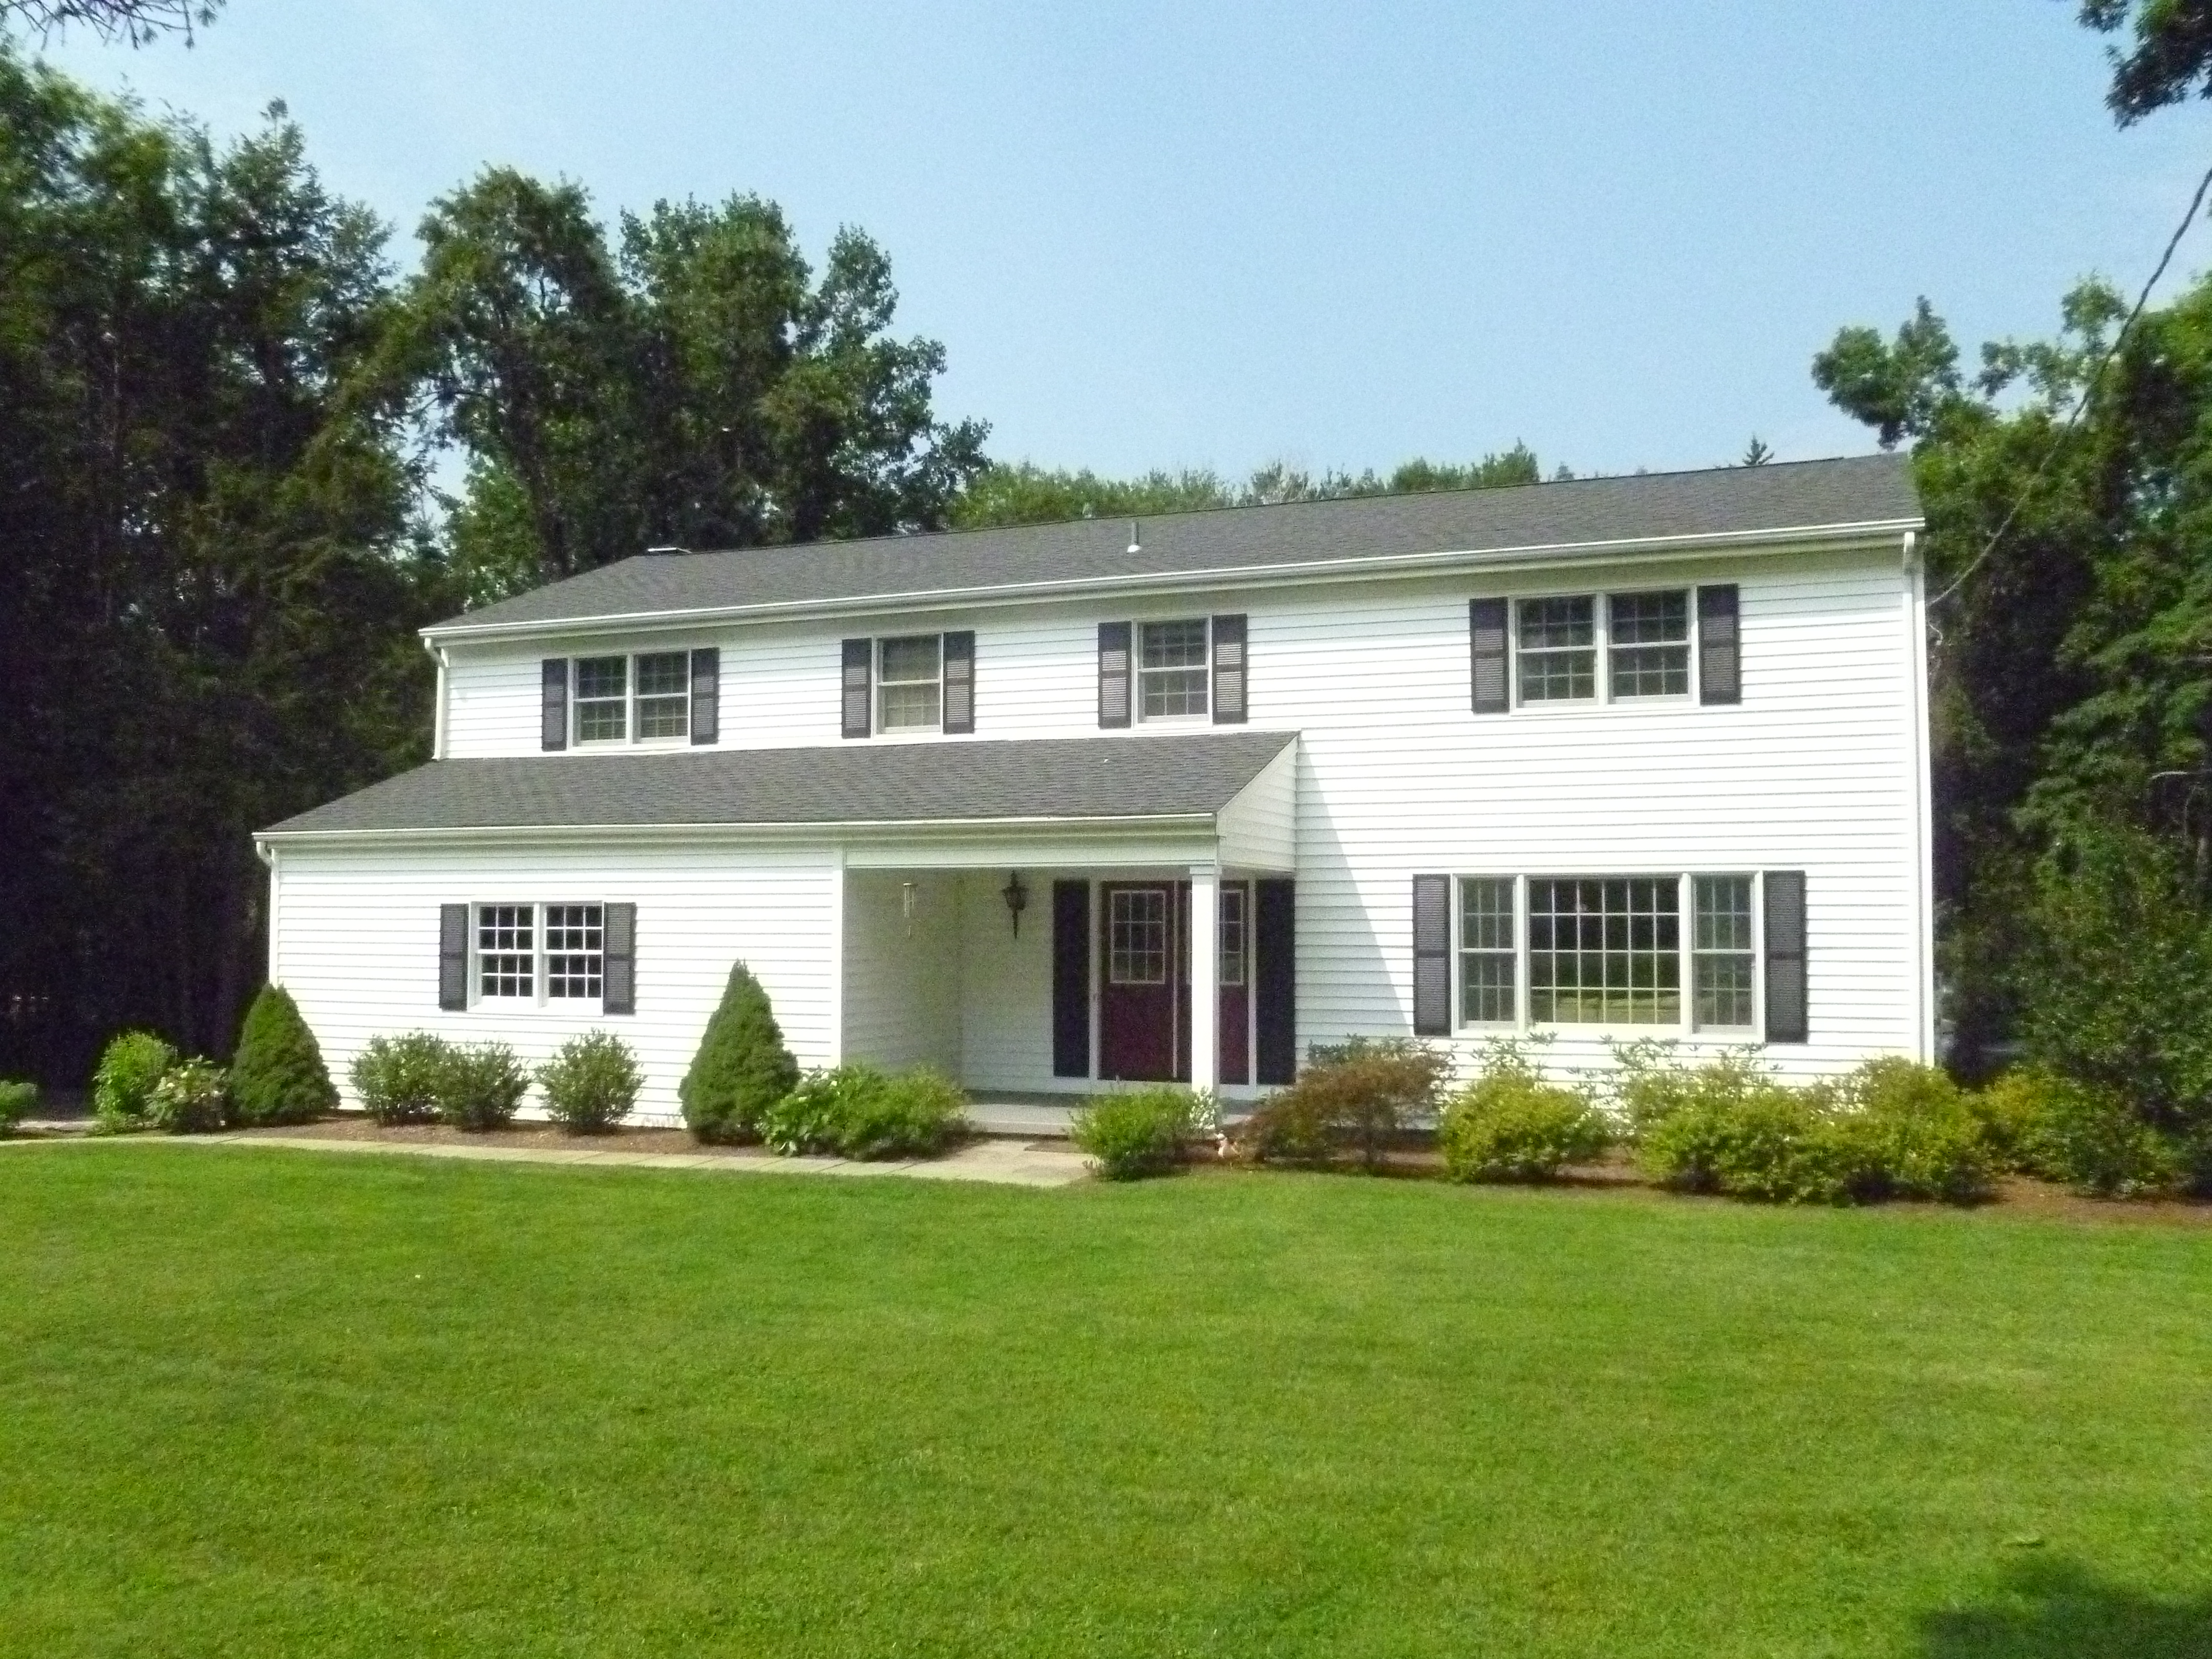 独户住宅 为 销售 在 Completely Renovated Colonial 52 Langstroth Drive Ridgefield, 康涅狄格州 06877 美国